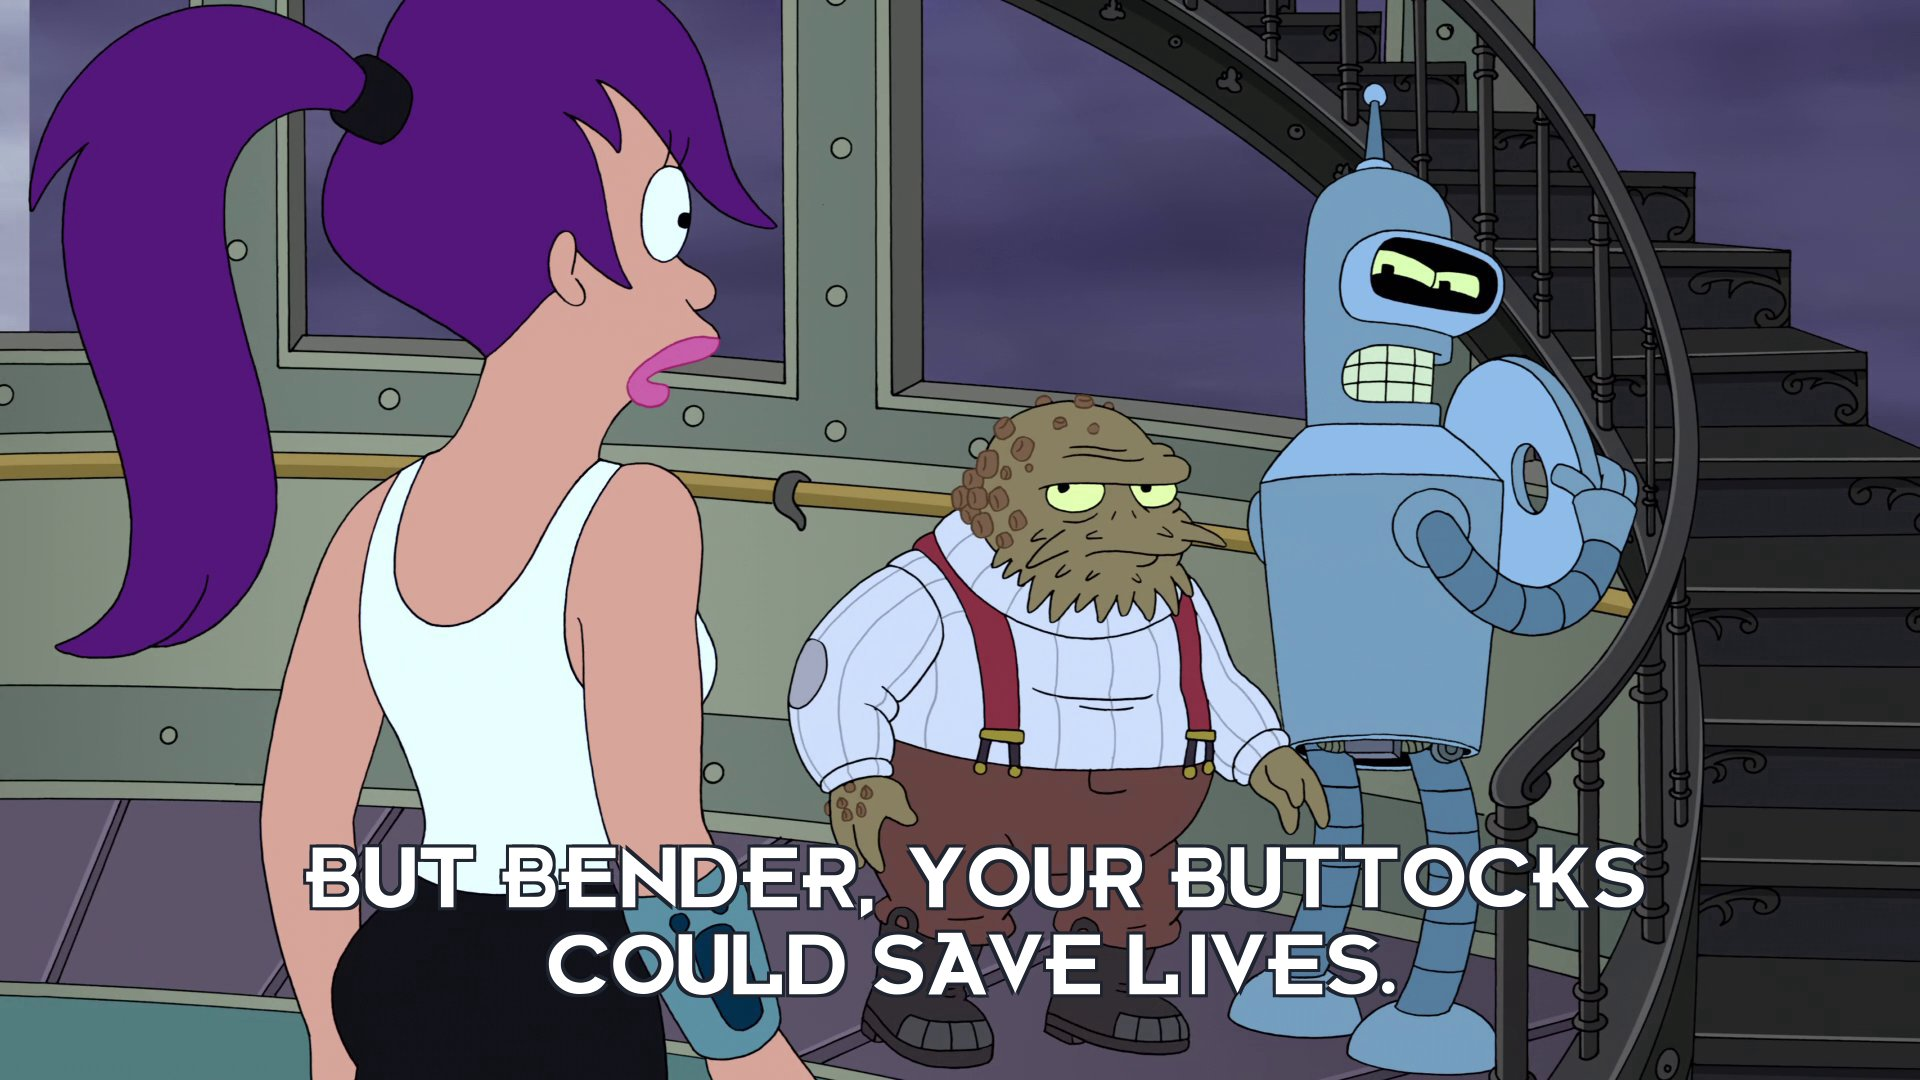 Turanga Leela: But Bender, your buttocks could save lives.